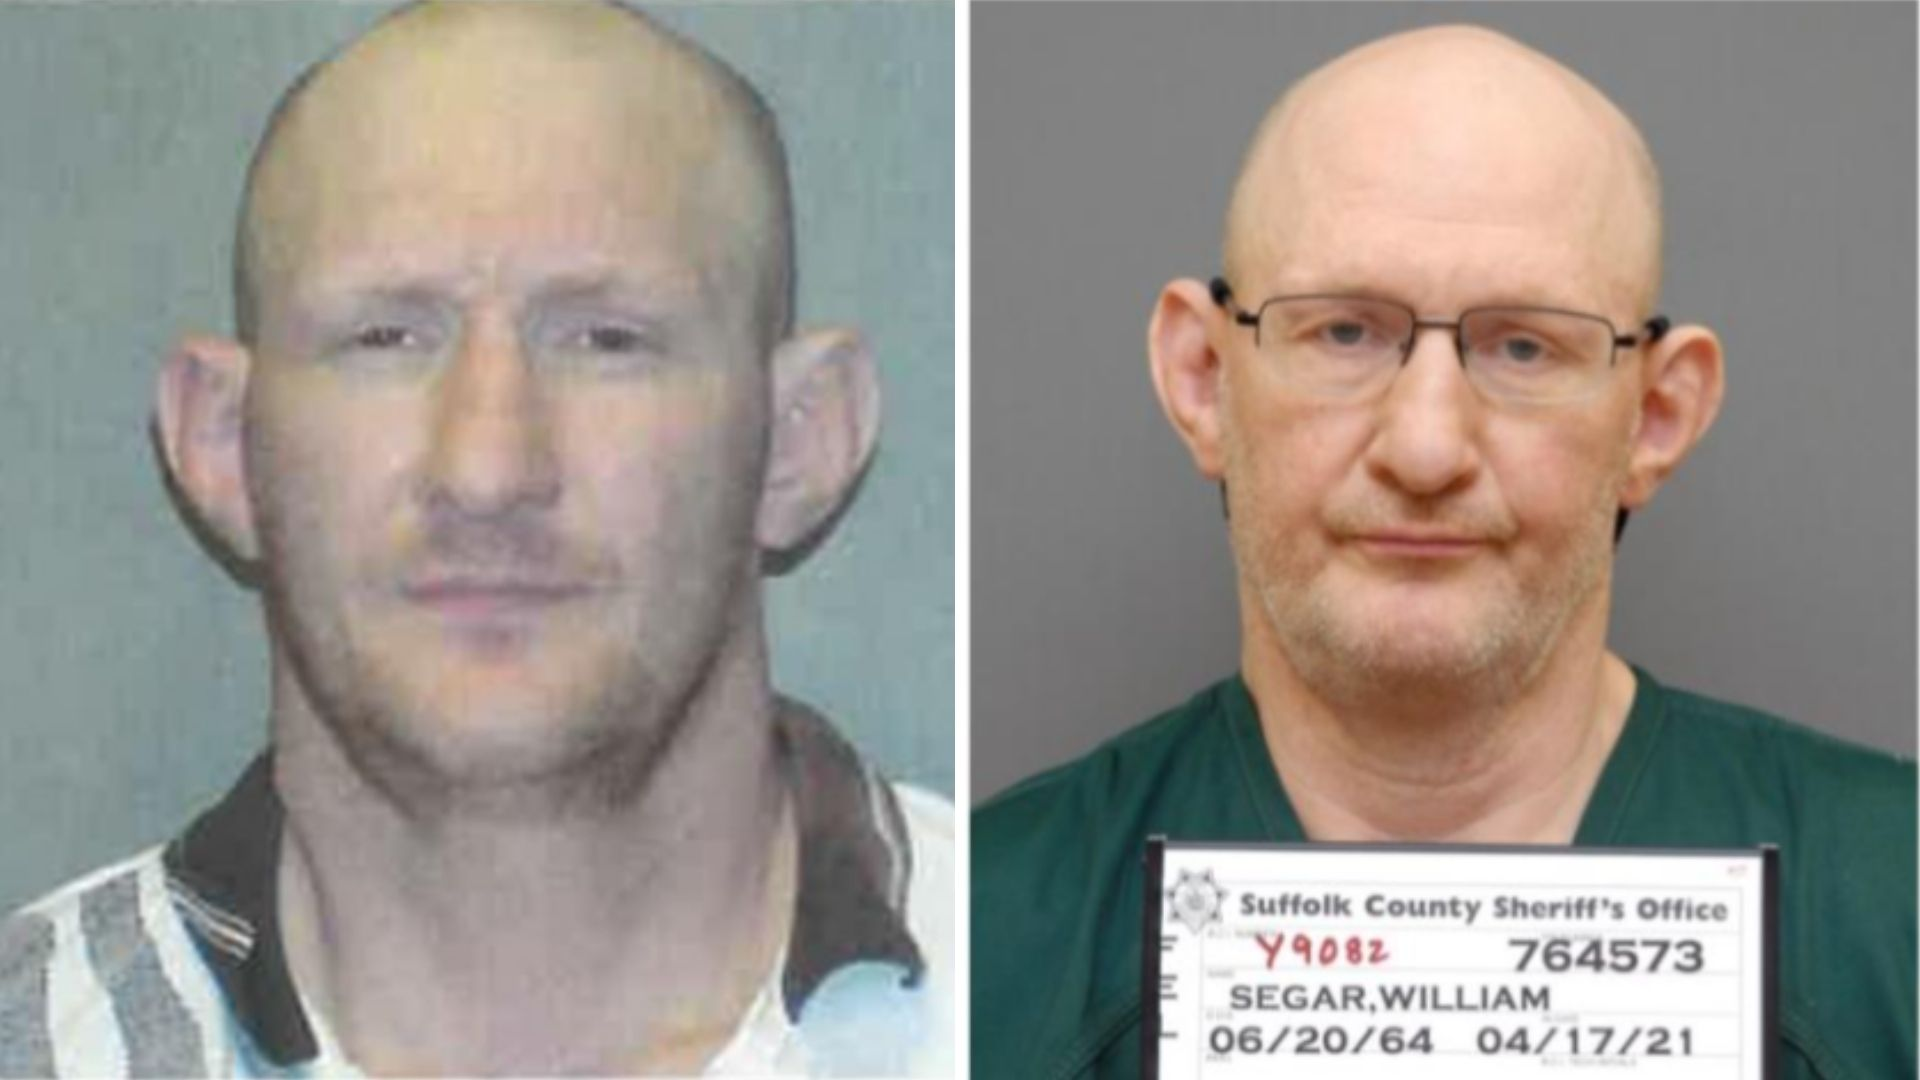 William Segar- Suffolk County Sheriff's Office